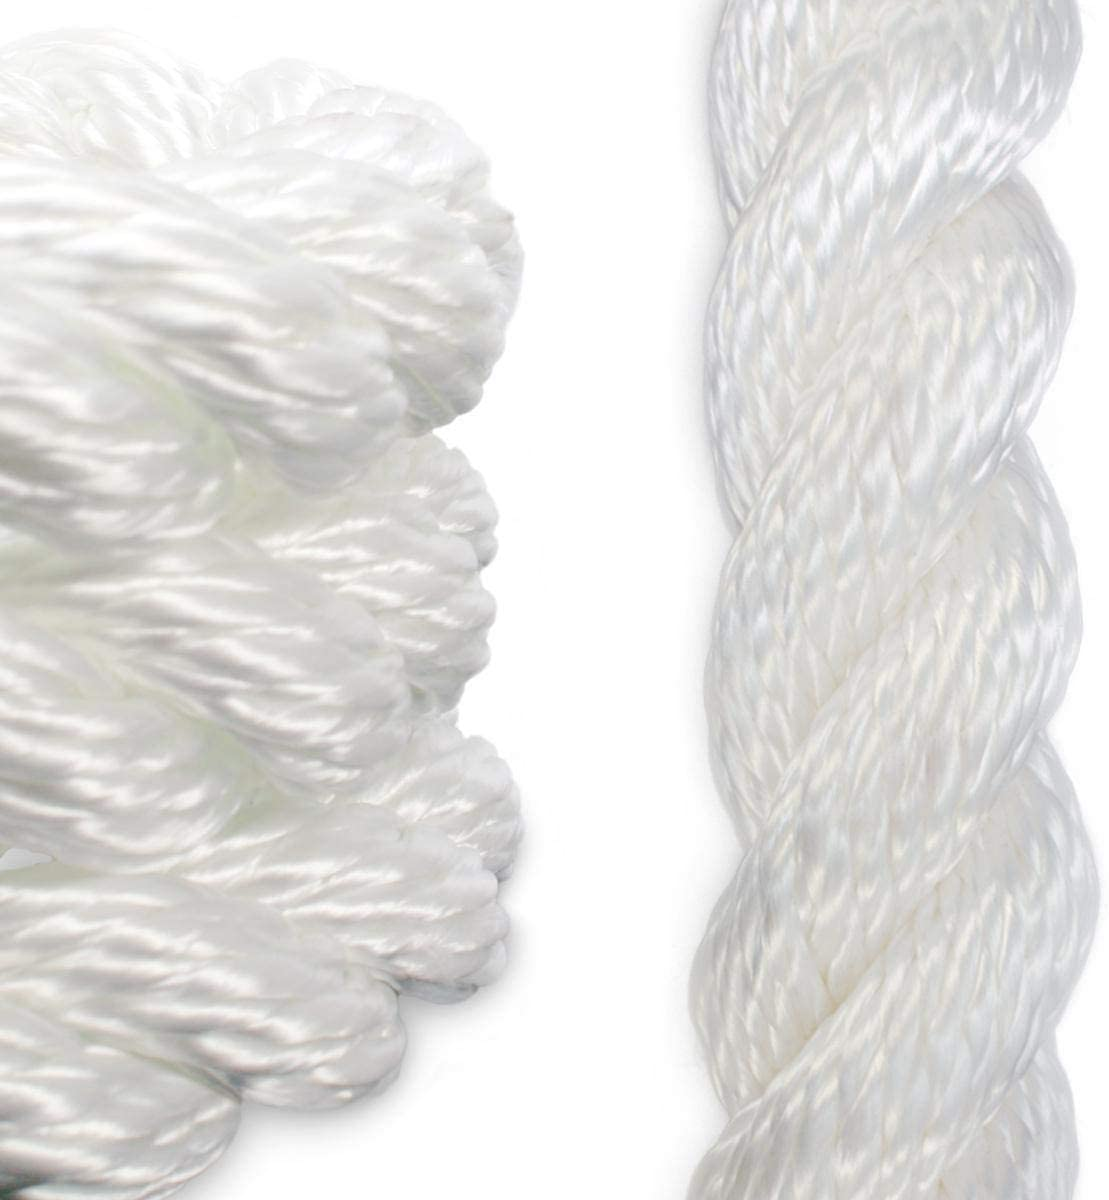 Knot Rope Cheap bargain Supply sold out Ltd 1 2